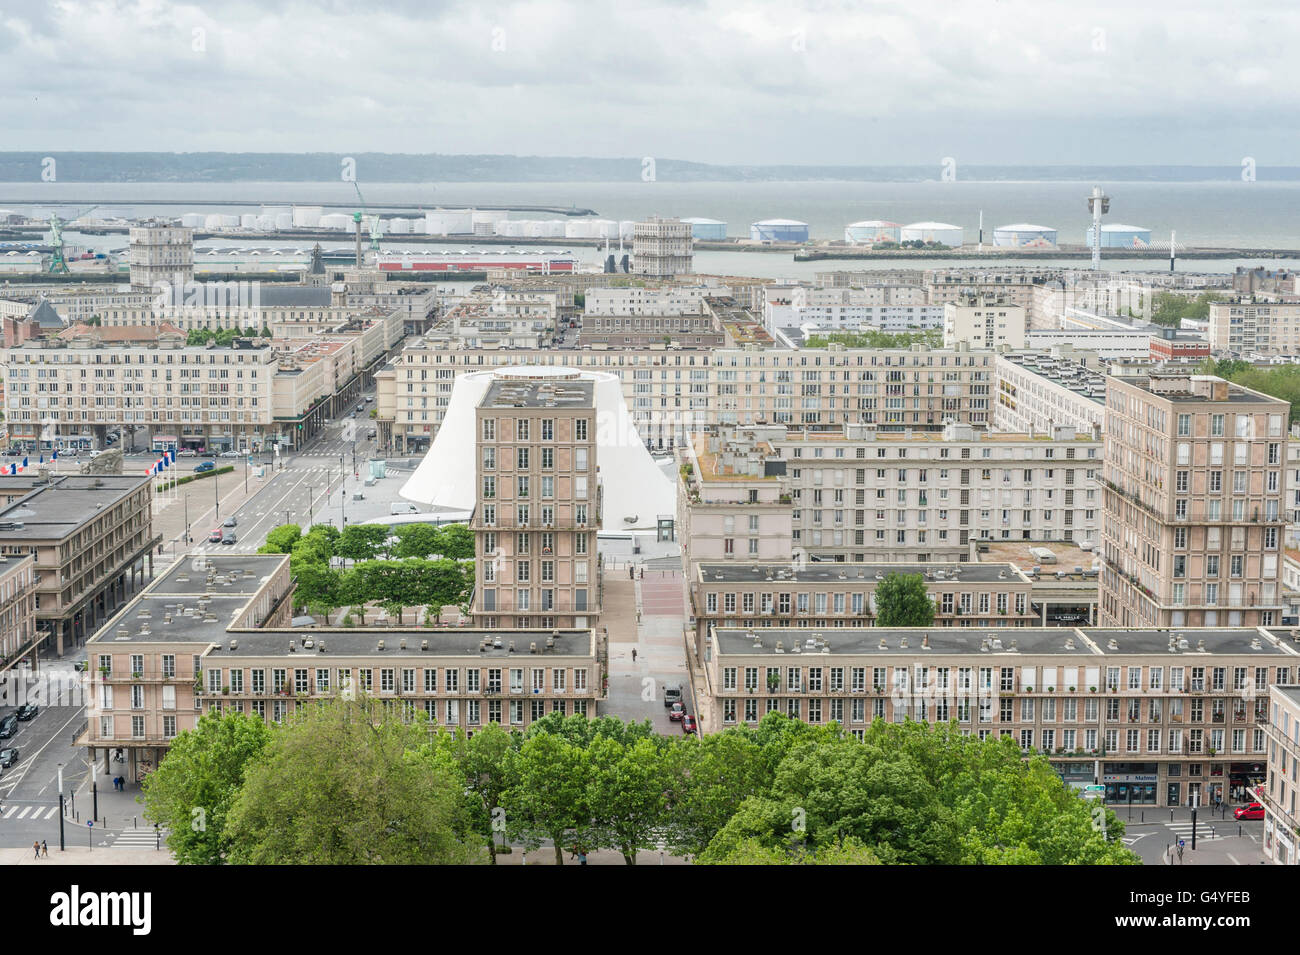 Details of the world heritage 'Quartier Perret' in Le Havre, Normandy, France - Stock Image